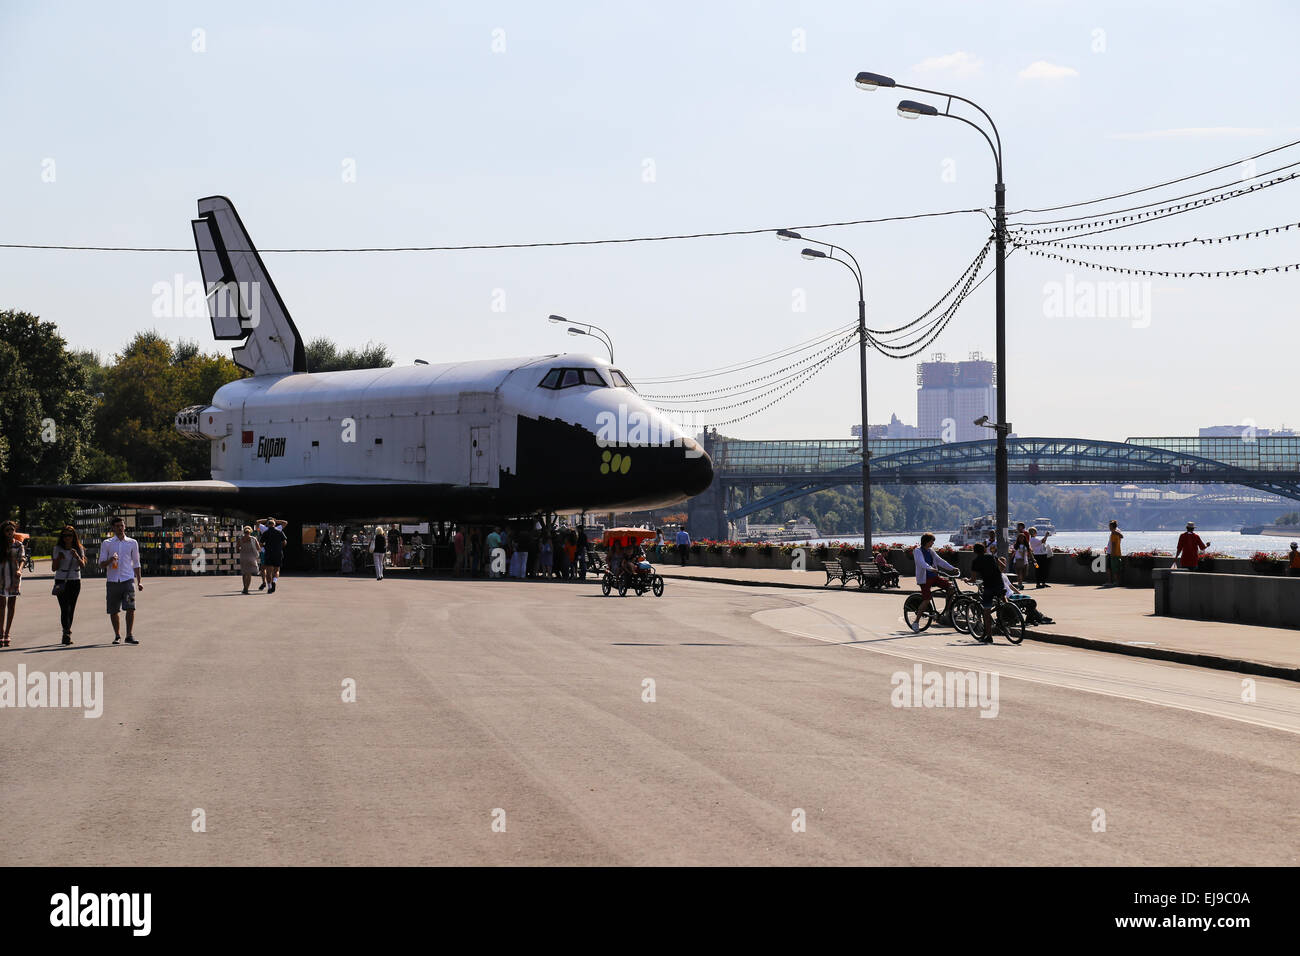 Space Shuttle in Moscow - Stock Image